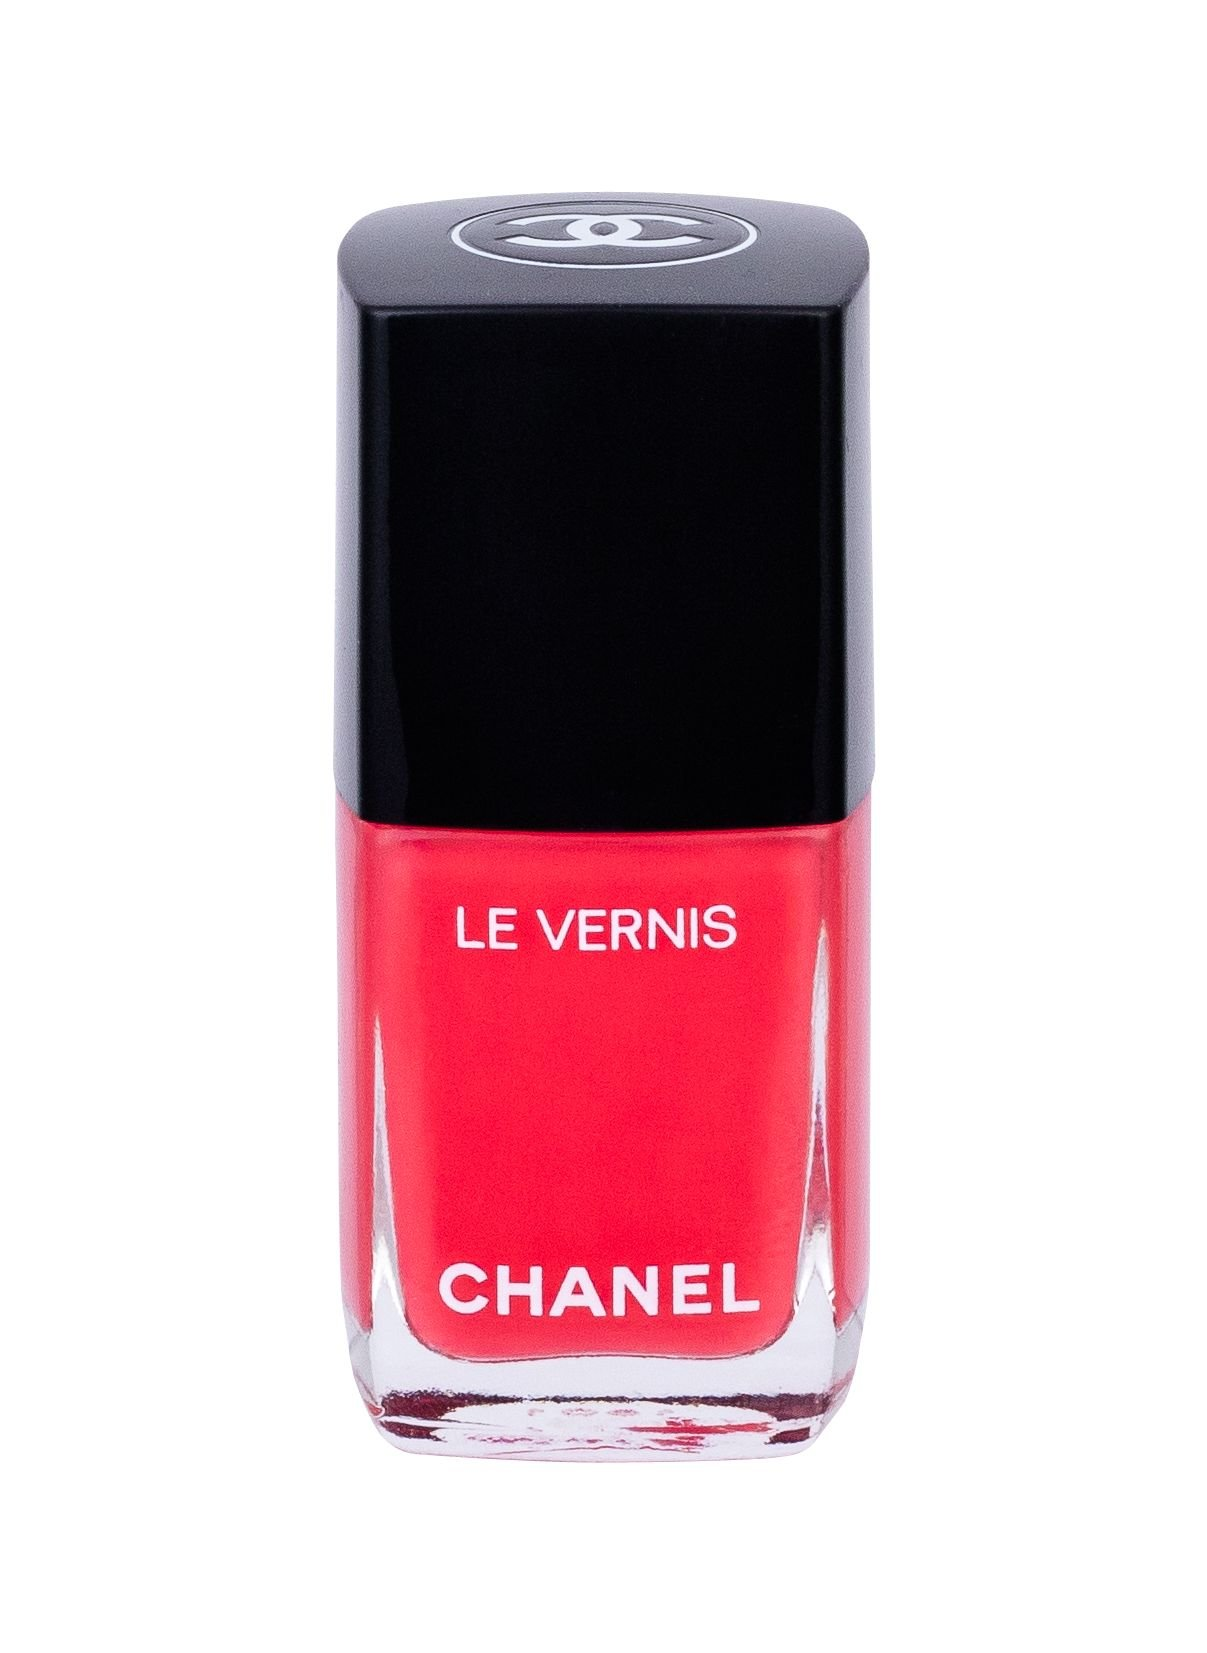 Chanel Le Vernis Nail Polish 13ml 524 Turban